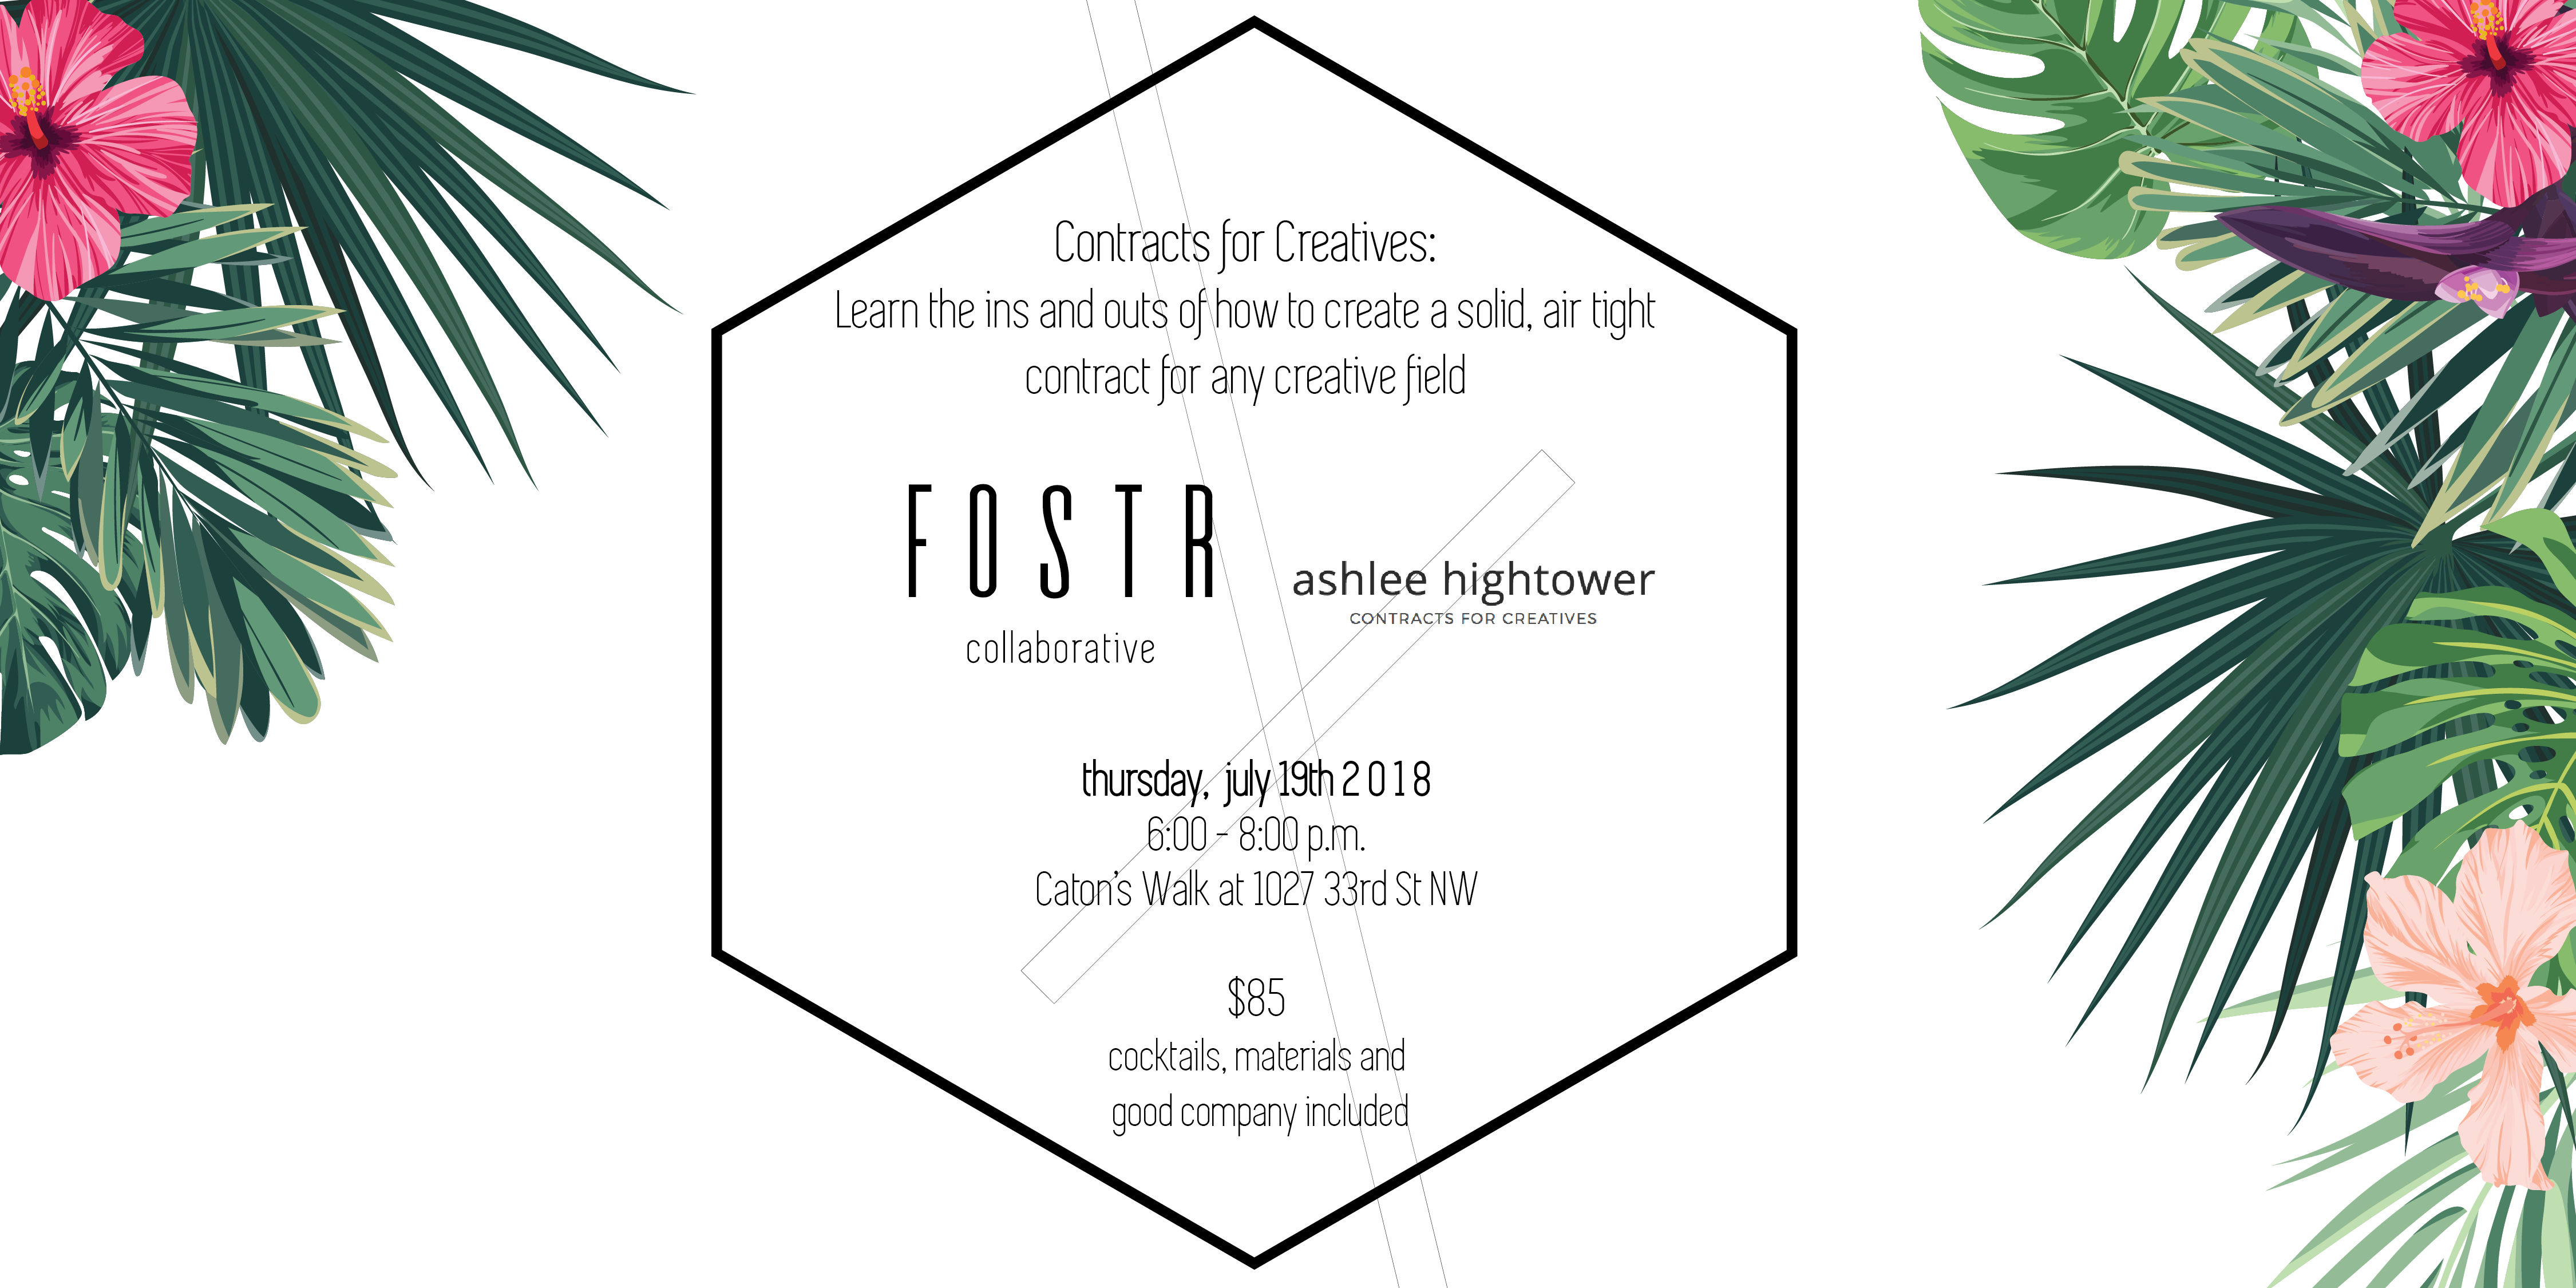 Contracts for Creatives | Ashlee Hightower | Workshop